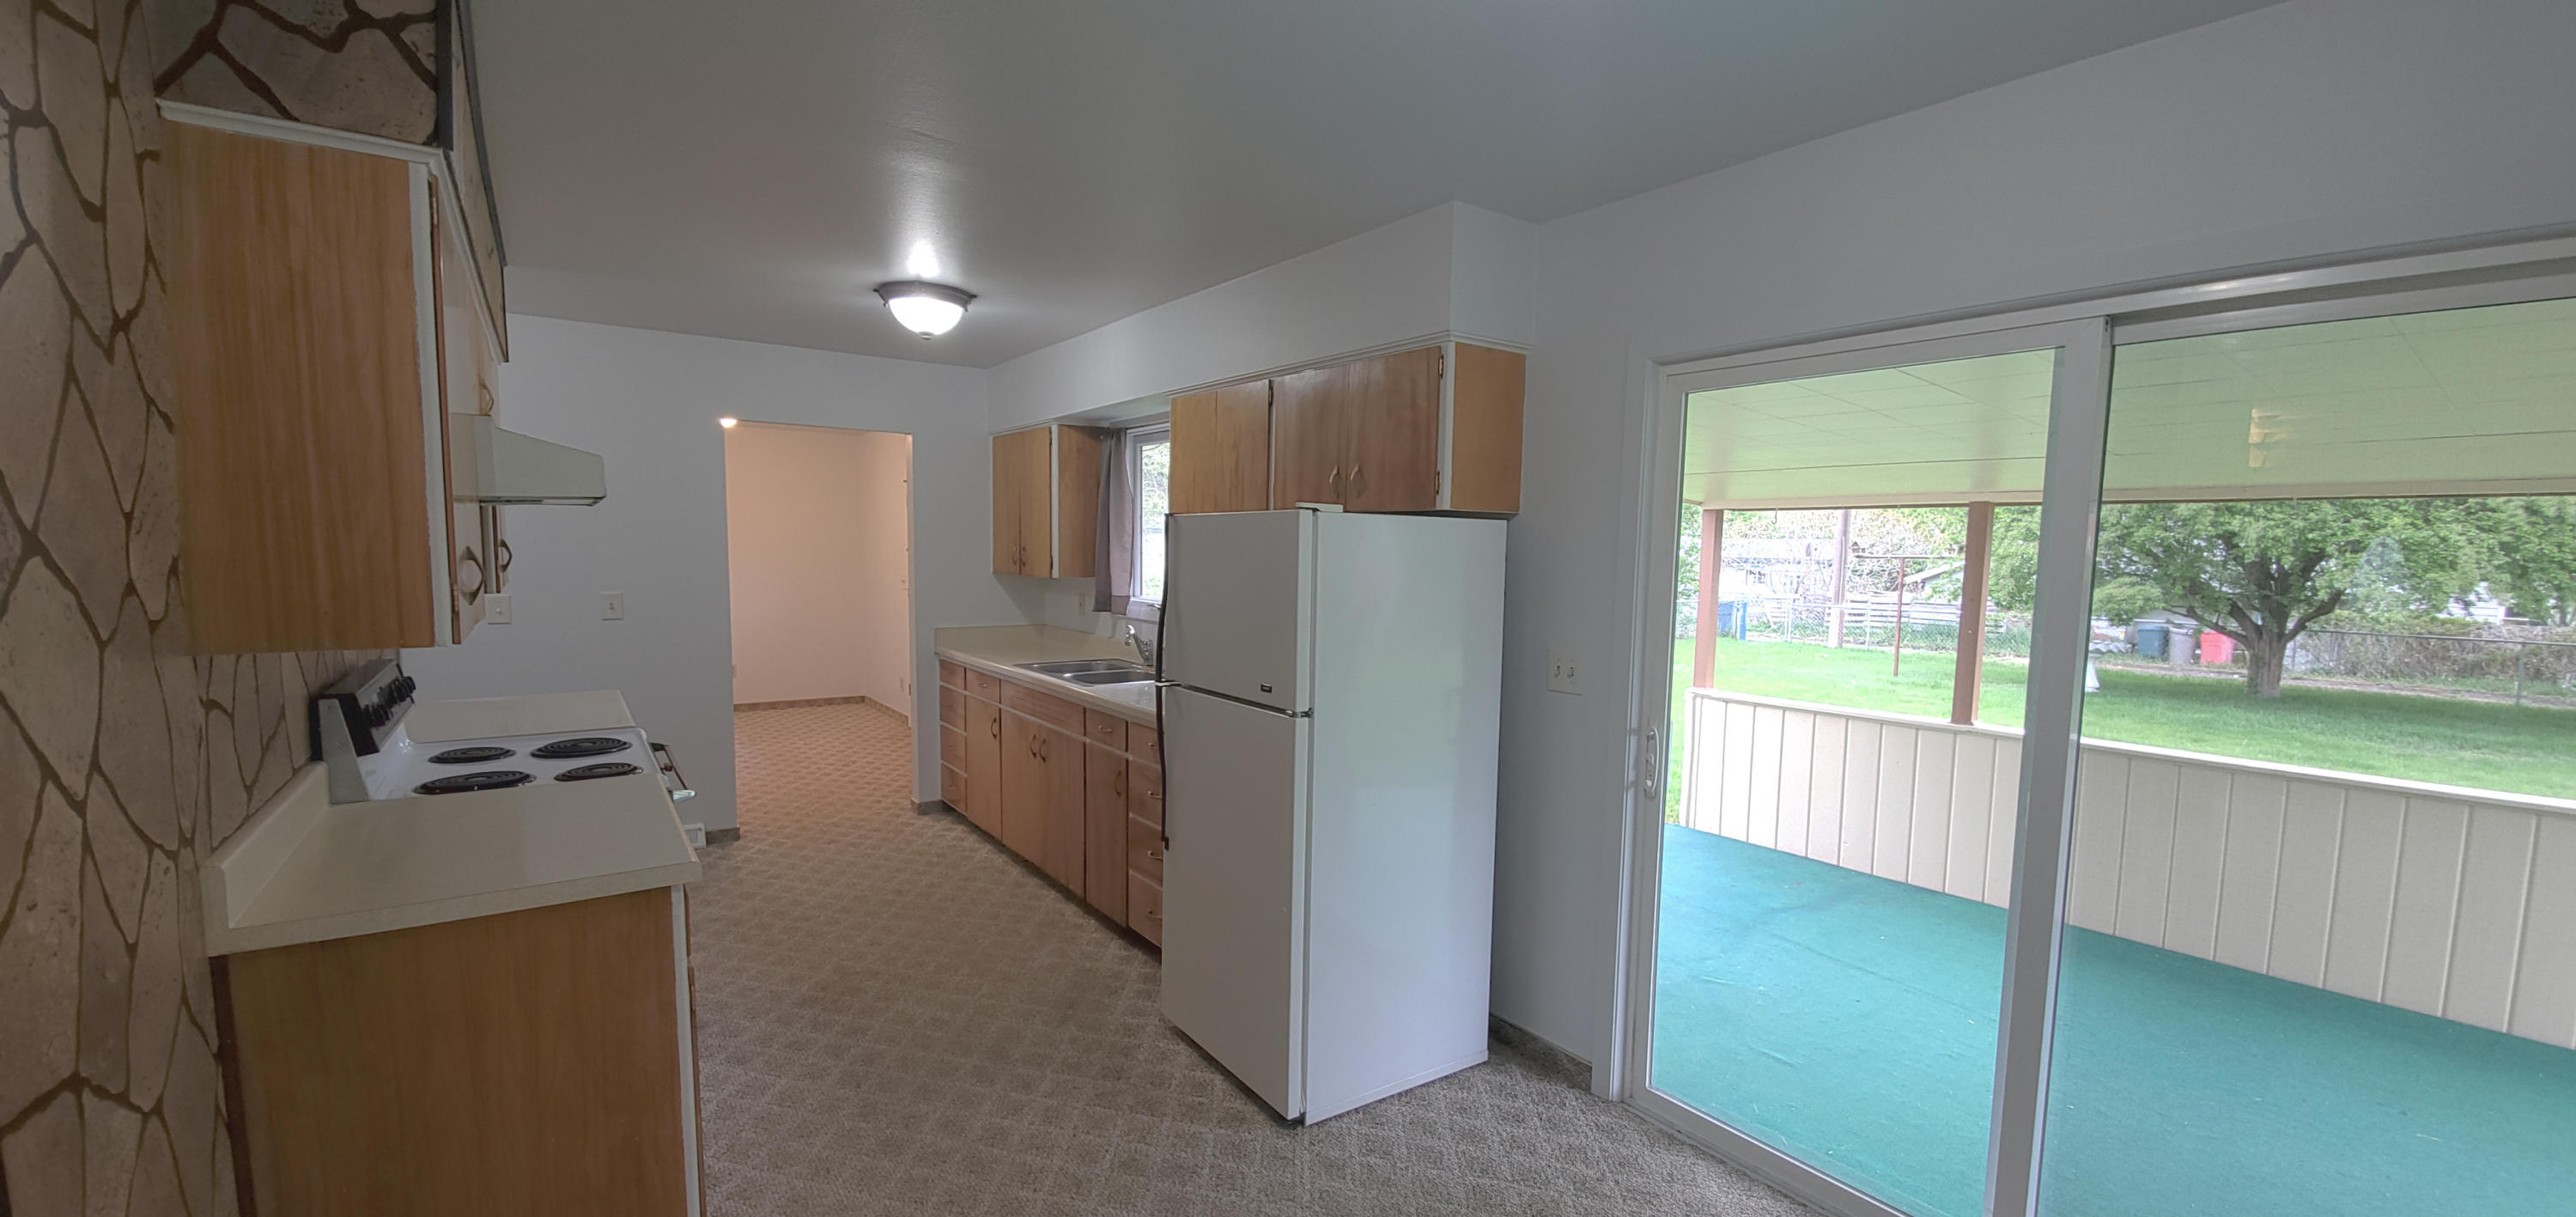 Property Image #5 for MLS #22107444